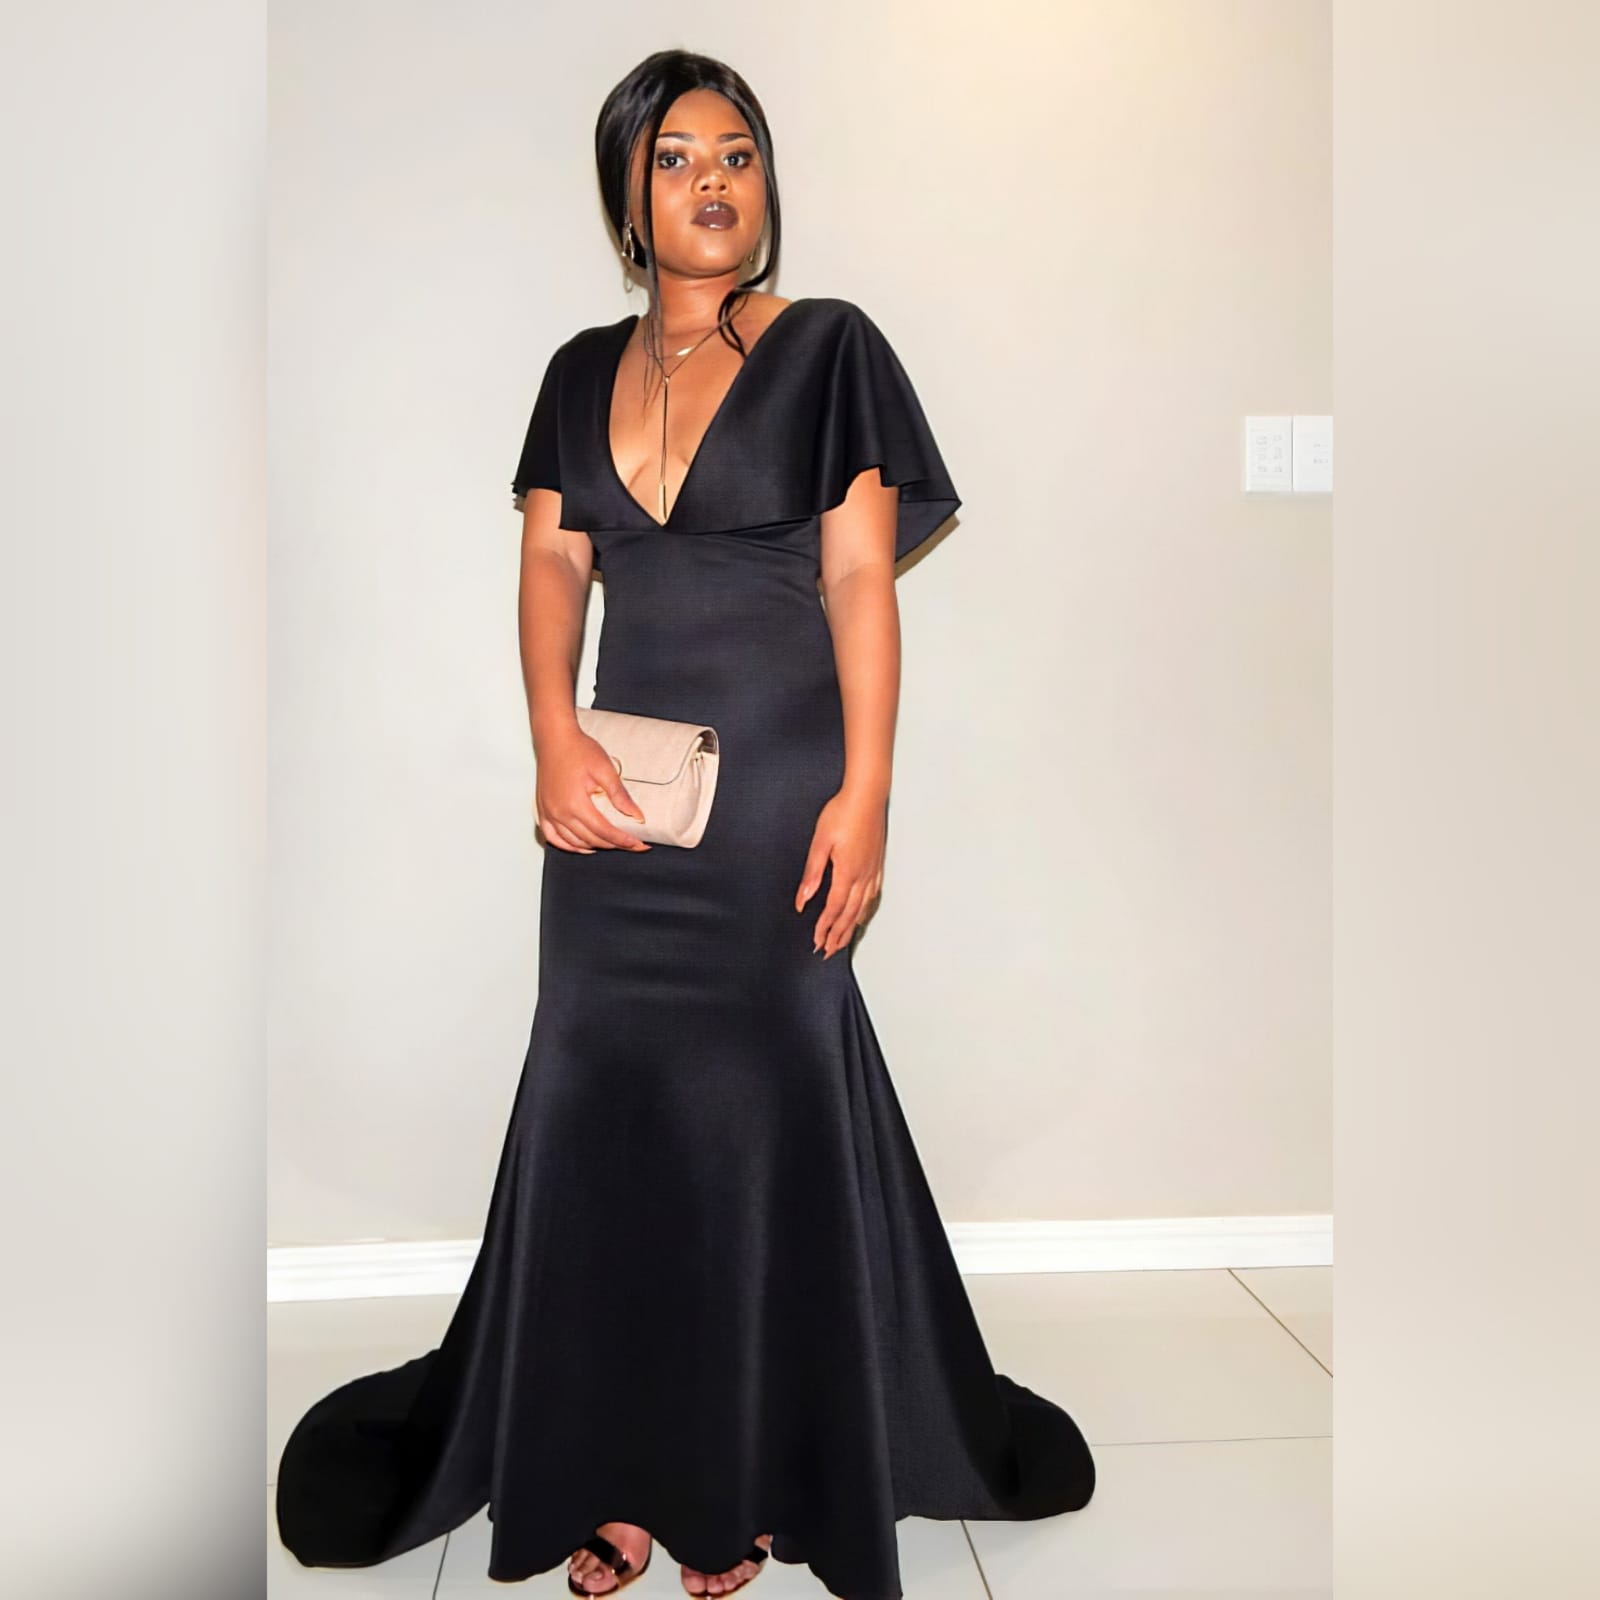 Black soft mermaid simple elegant evening dress 1 black soft mermaid simple elegant evening dress, made for prom night. With a plunging neckline, naked back, wide loose sleeves effect and a train